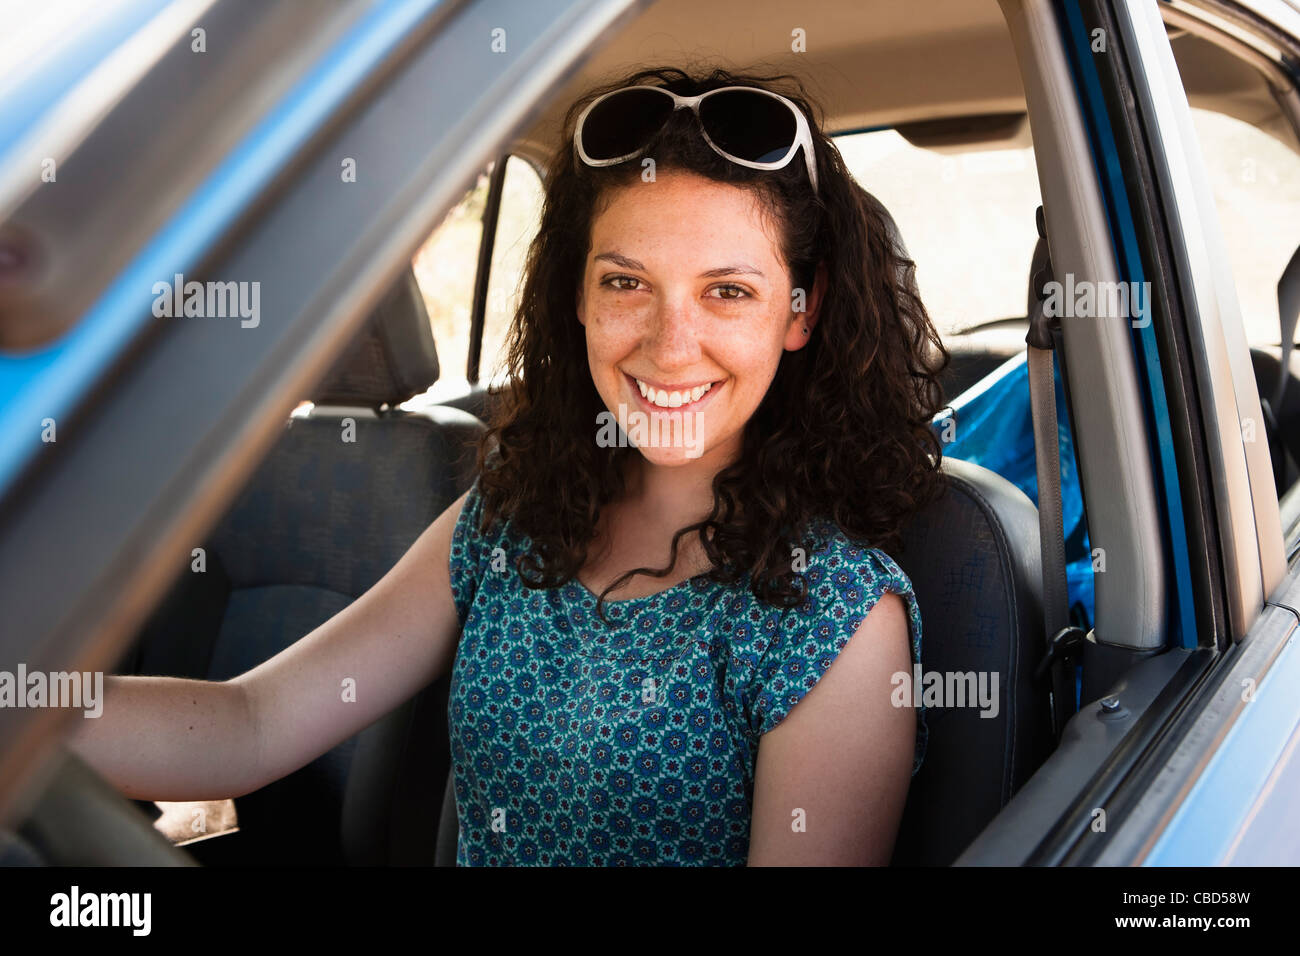 Smiling woman driving car - Stock Image